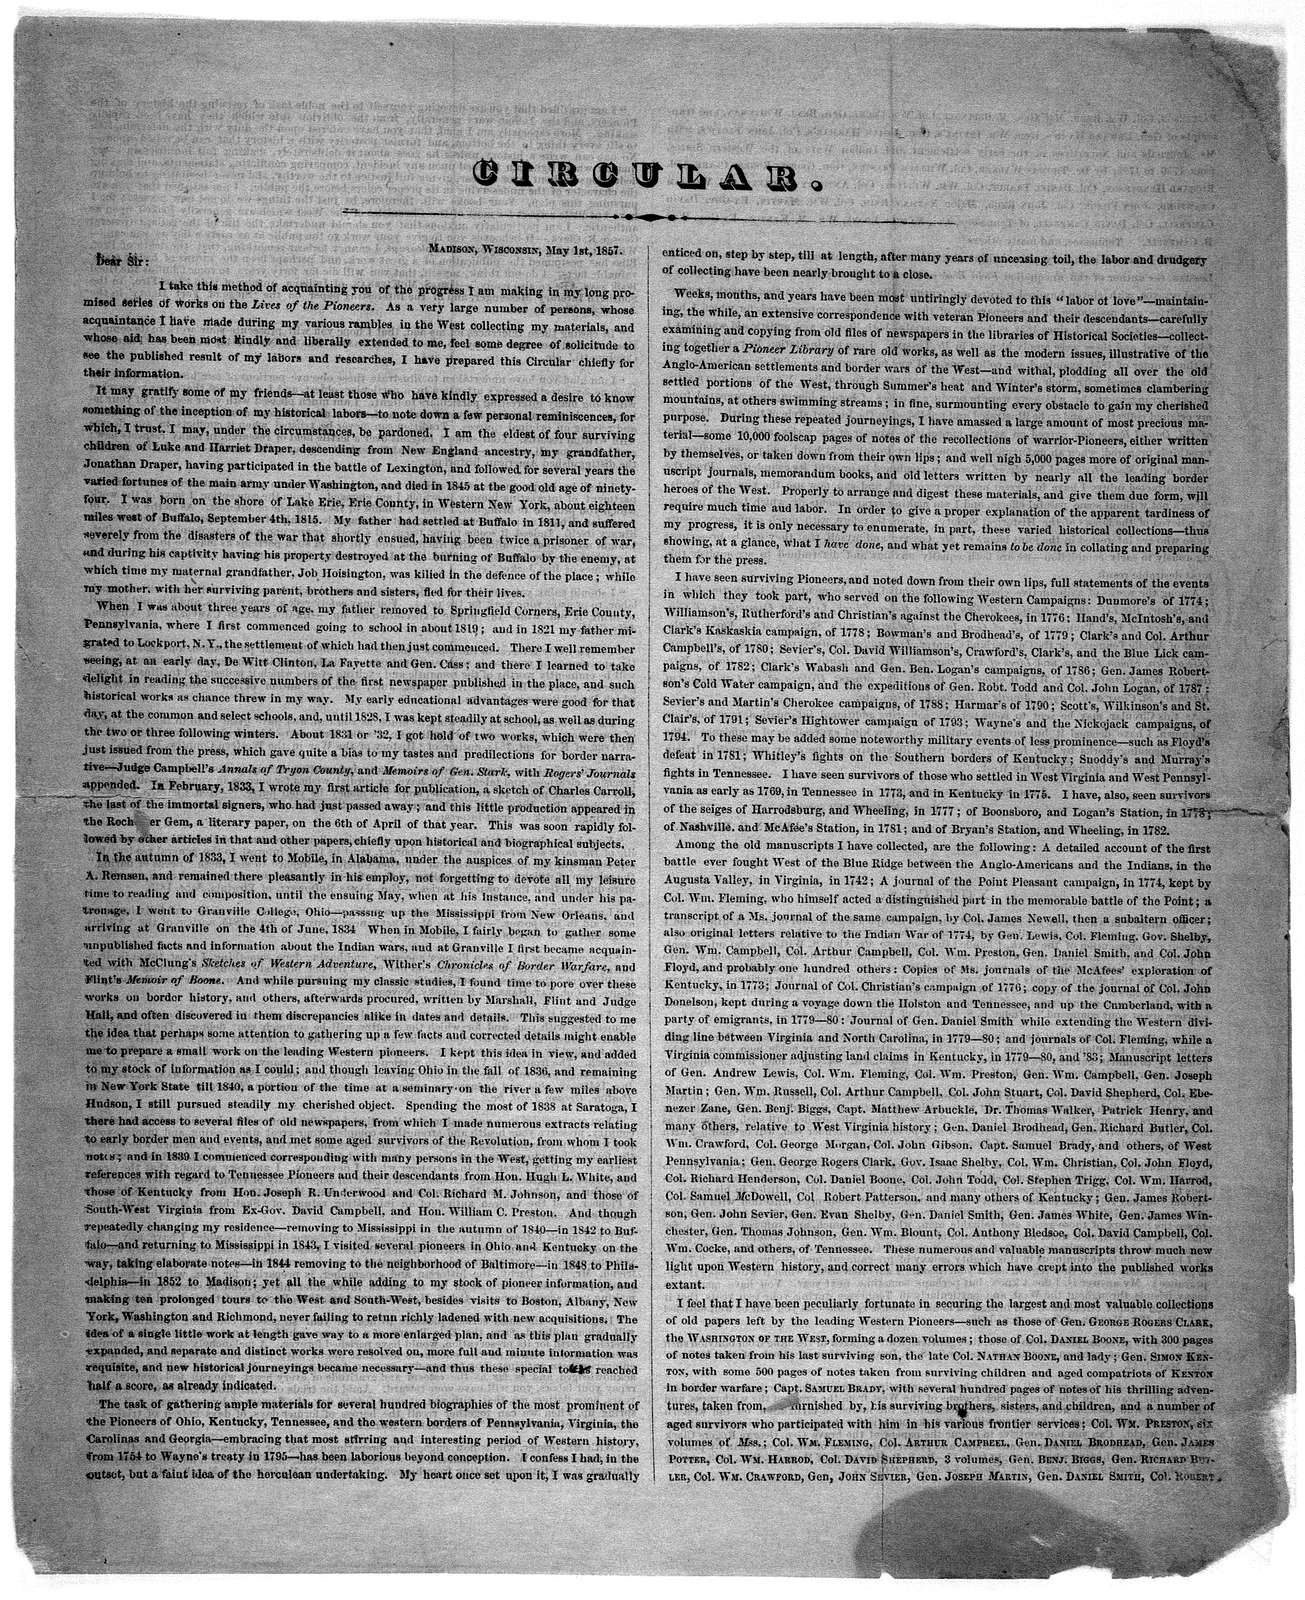 Circular. Dear Sir: I take this method of acquainting you of the progress I am making in my long promised series of works on the Lives of the pioneers .... Madison, Wisconsin, May 1st, 1857.